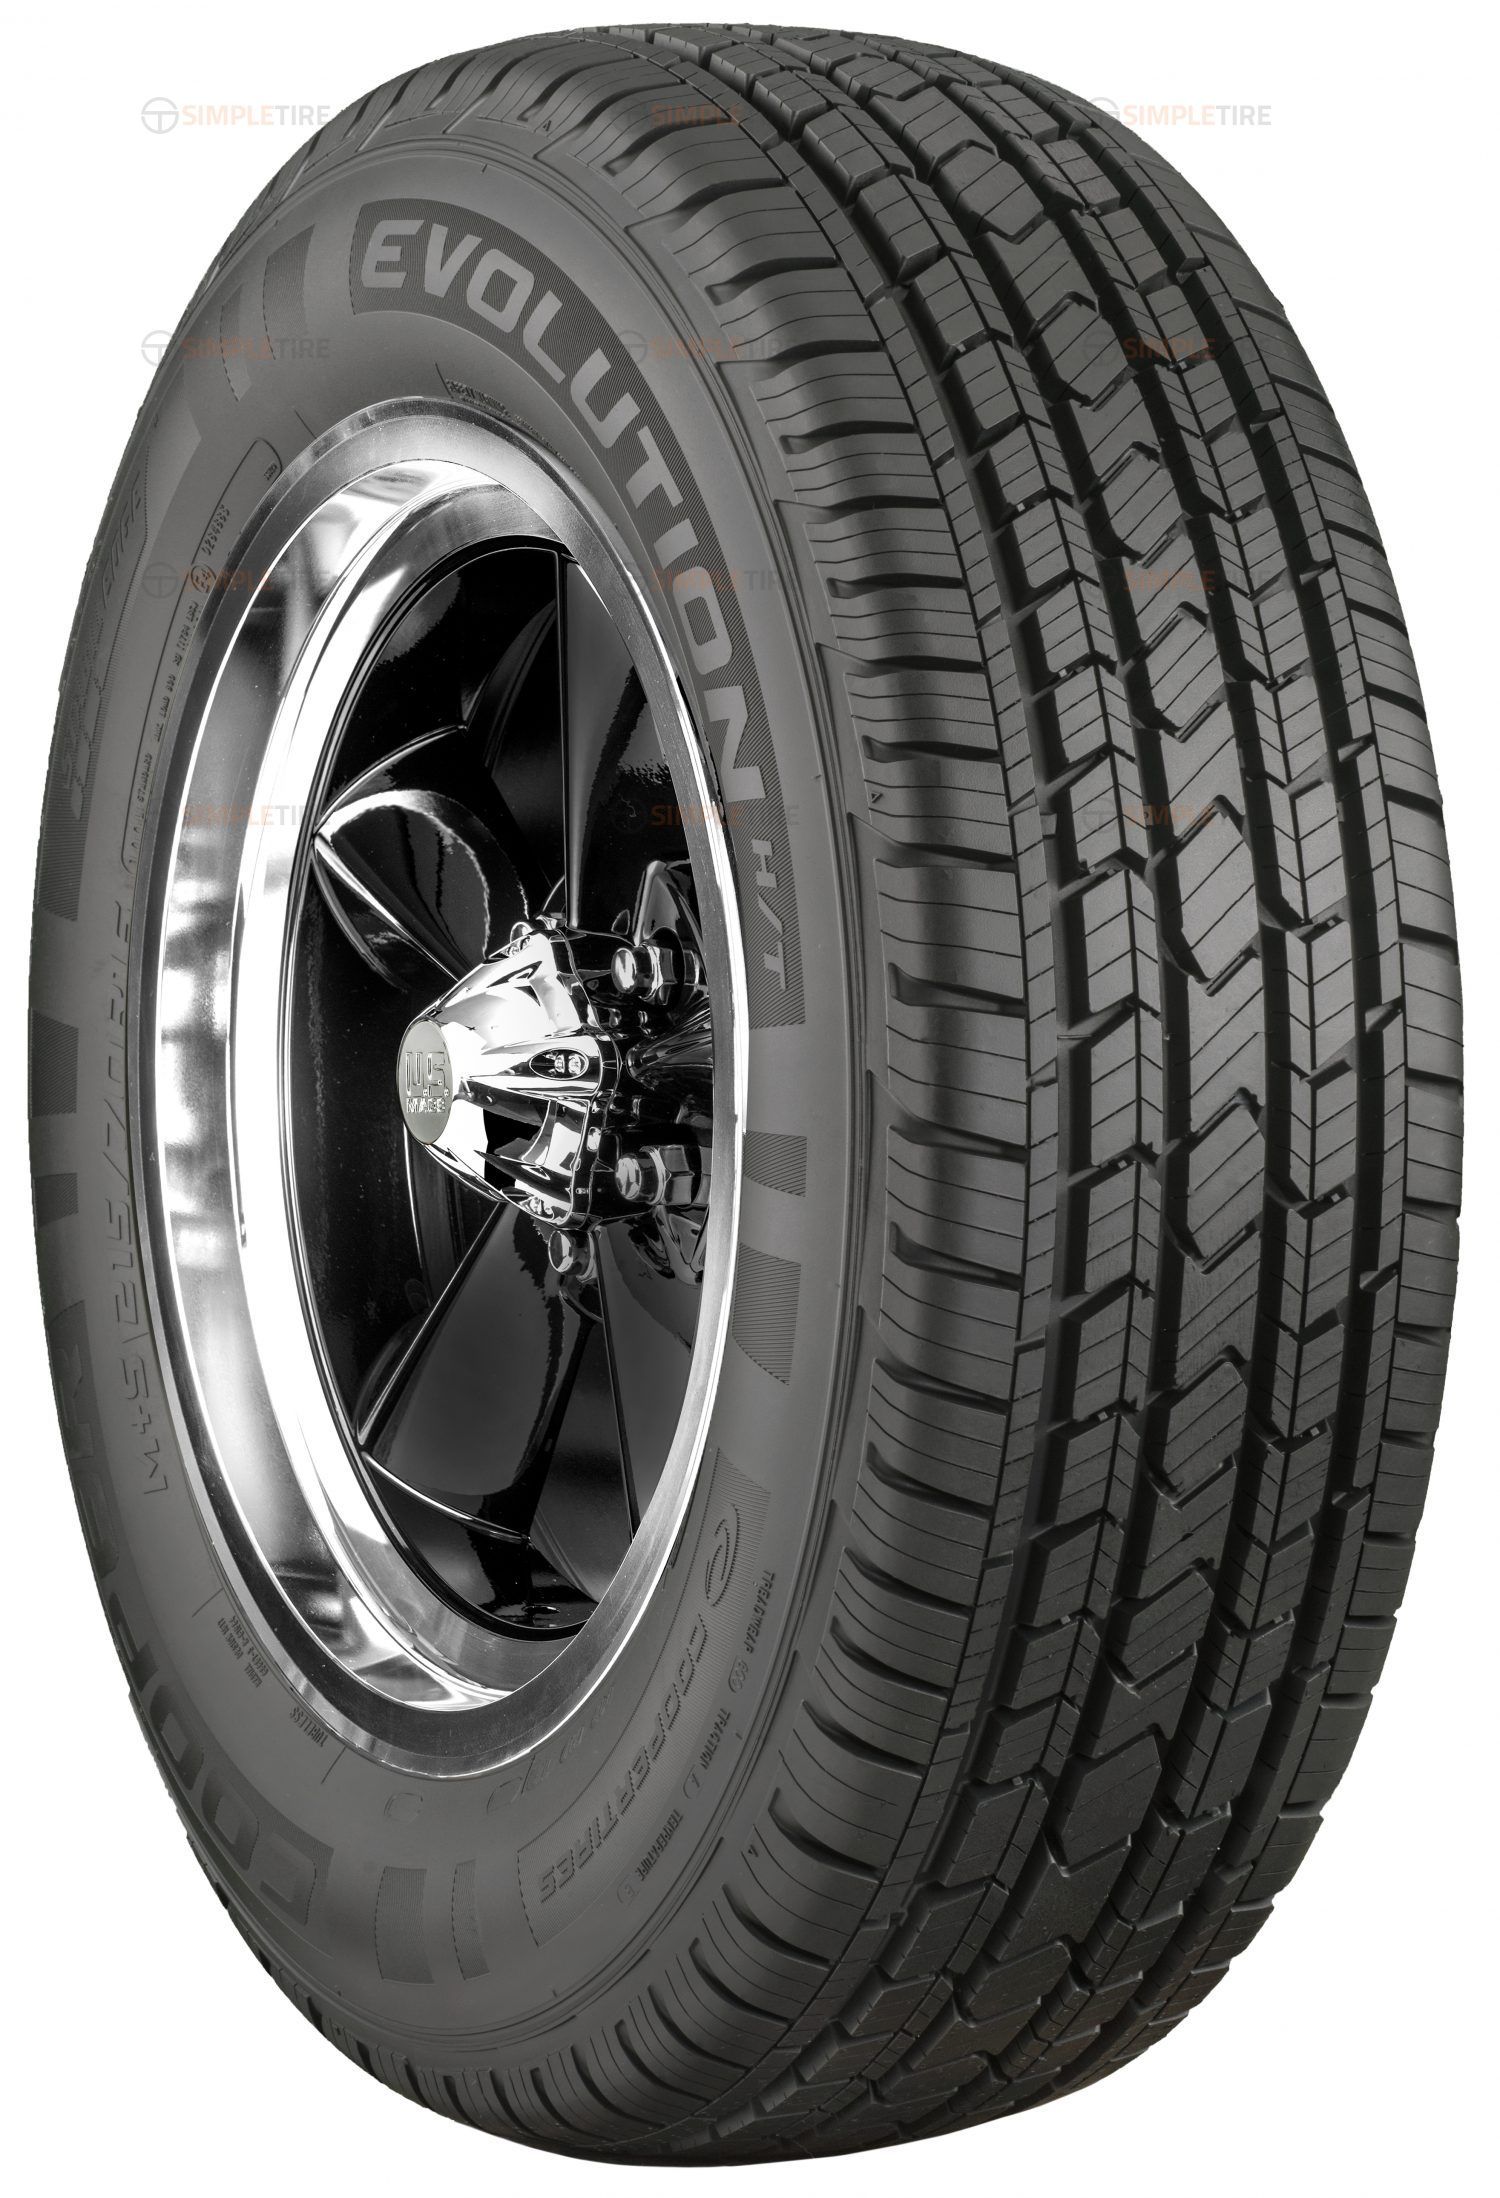 90000029096 245/65R17 Evolution HT Cooper